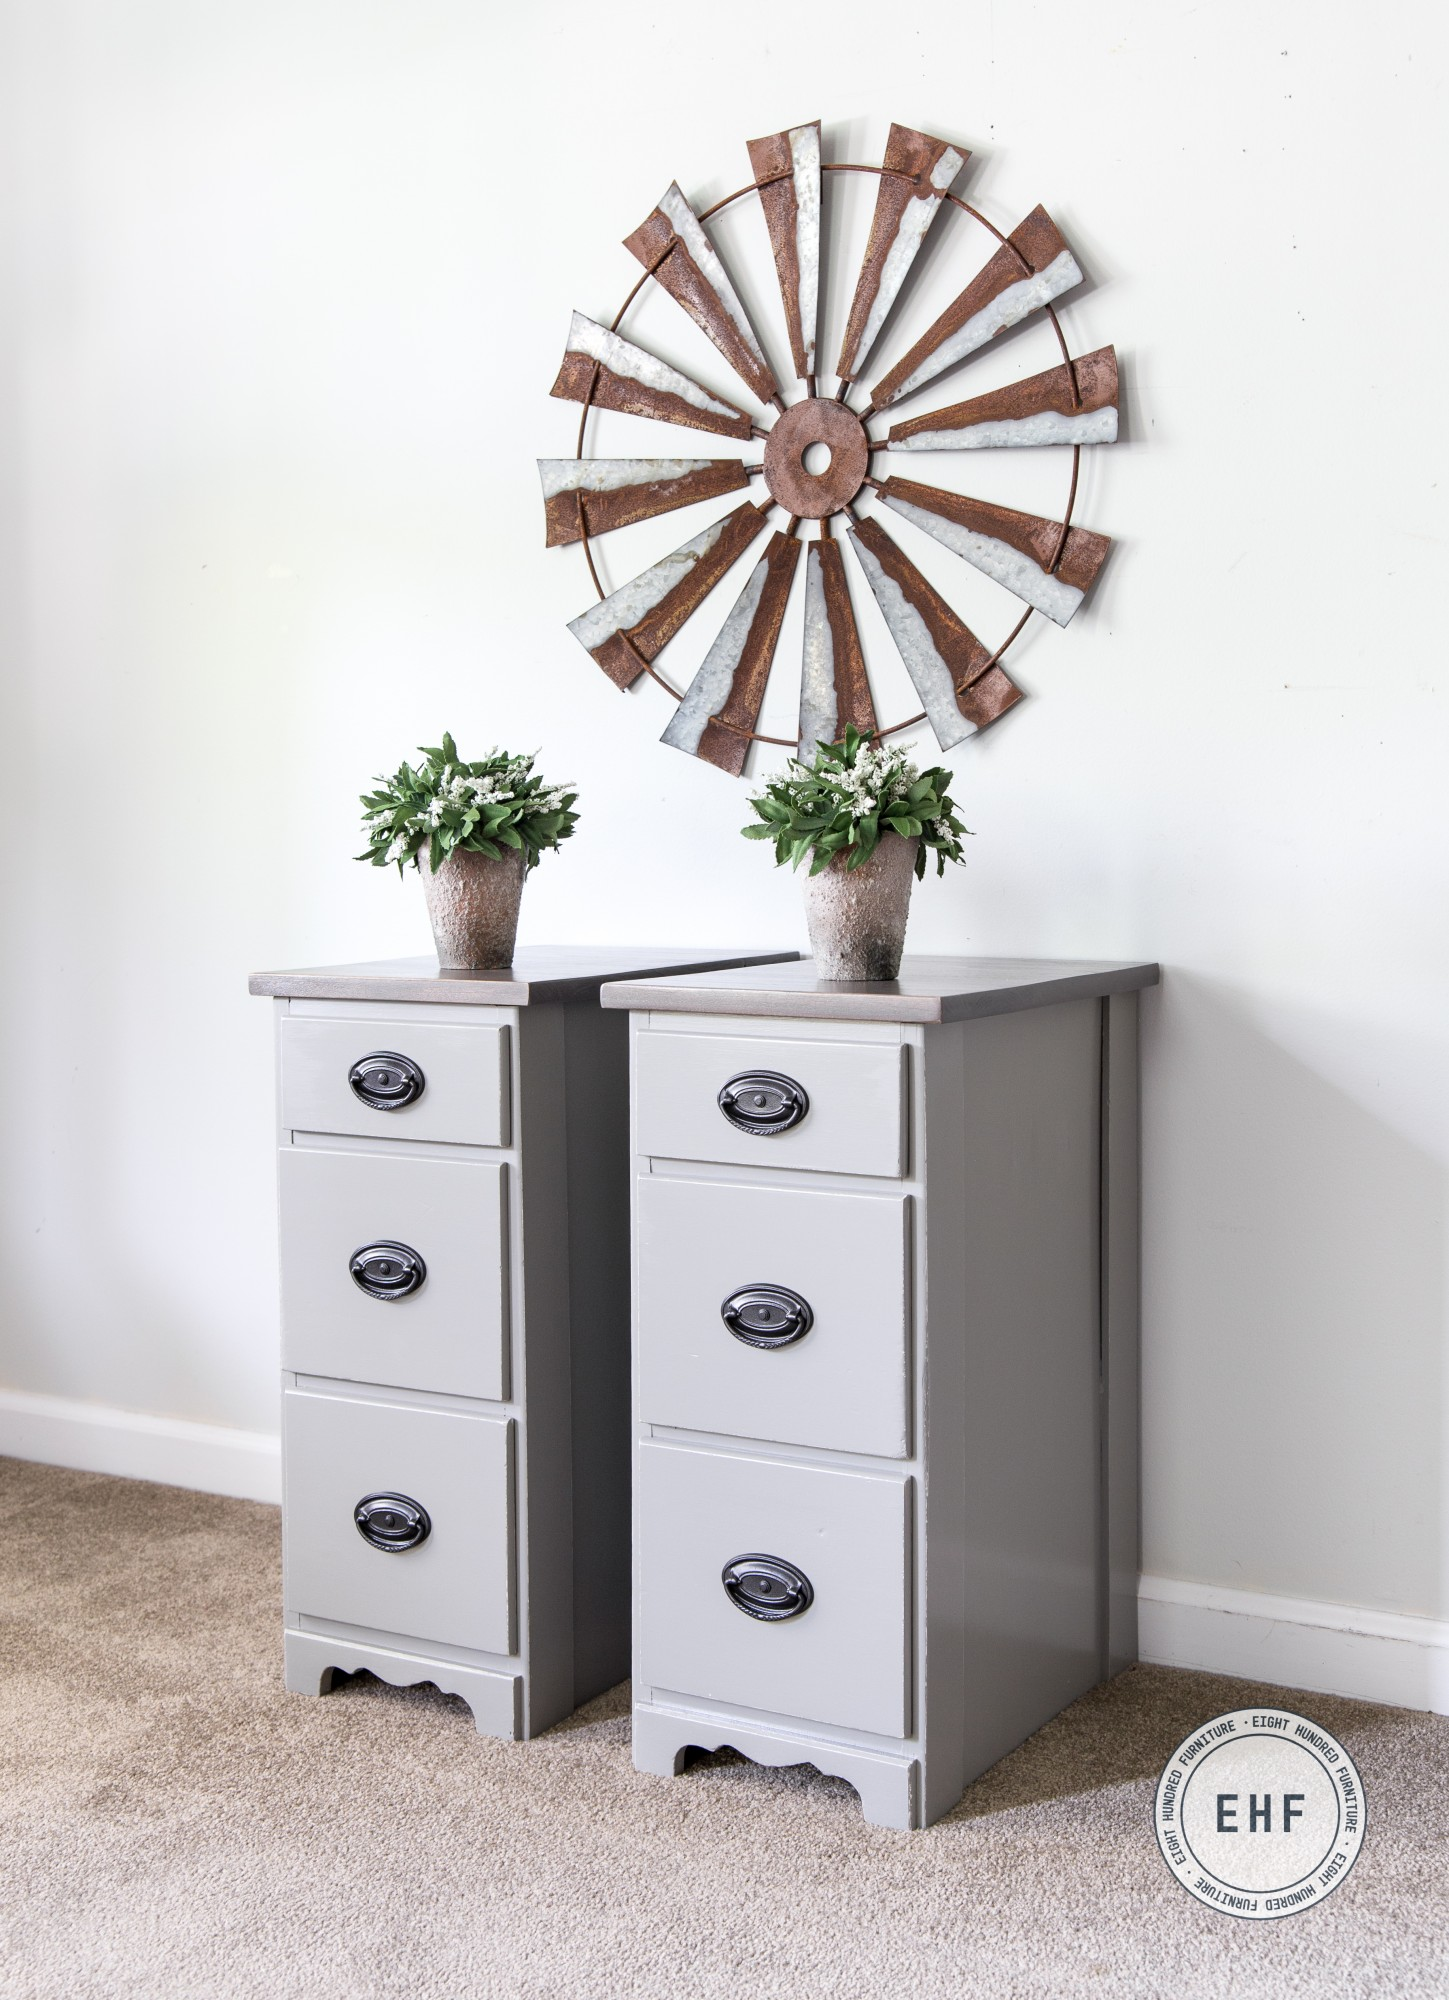 Side view of Nightstands in Empire Gray Milk Paint, Ash Gray Gel Stain, Van Dyke Brown Glaze Effects by General Finishes, Eight Hundred Furniture